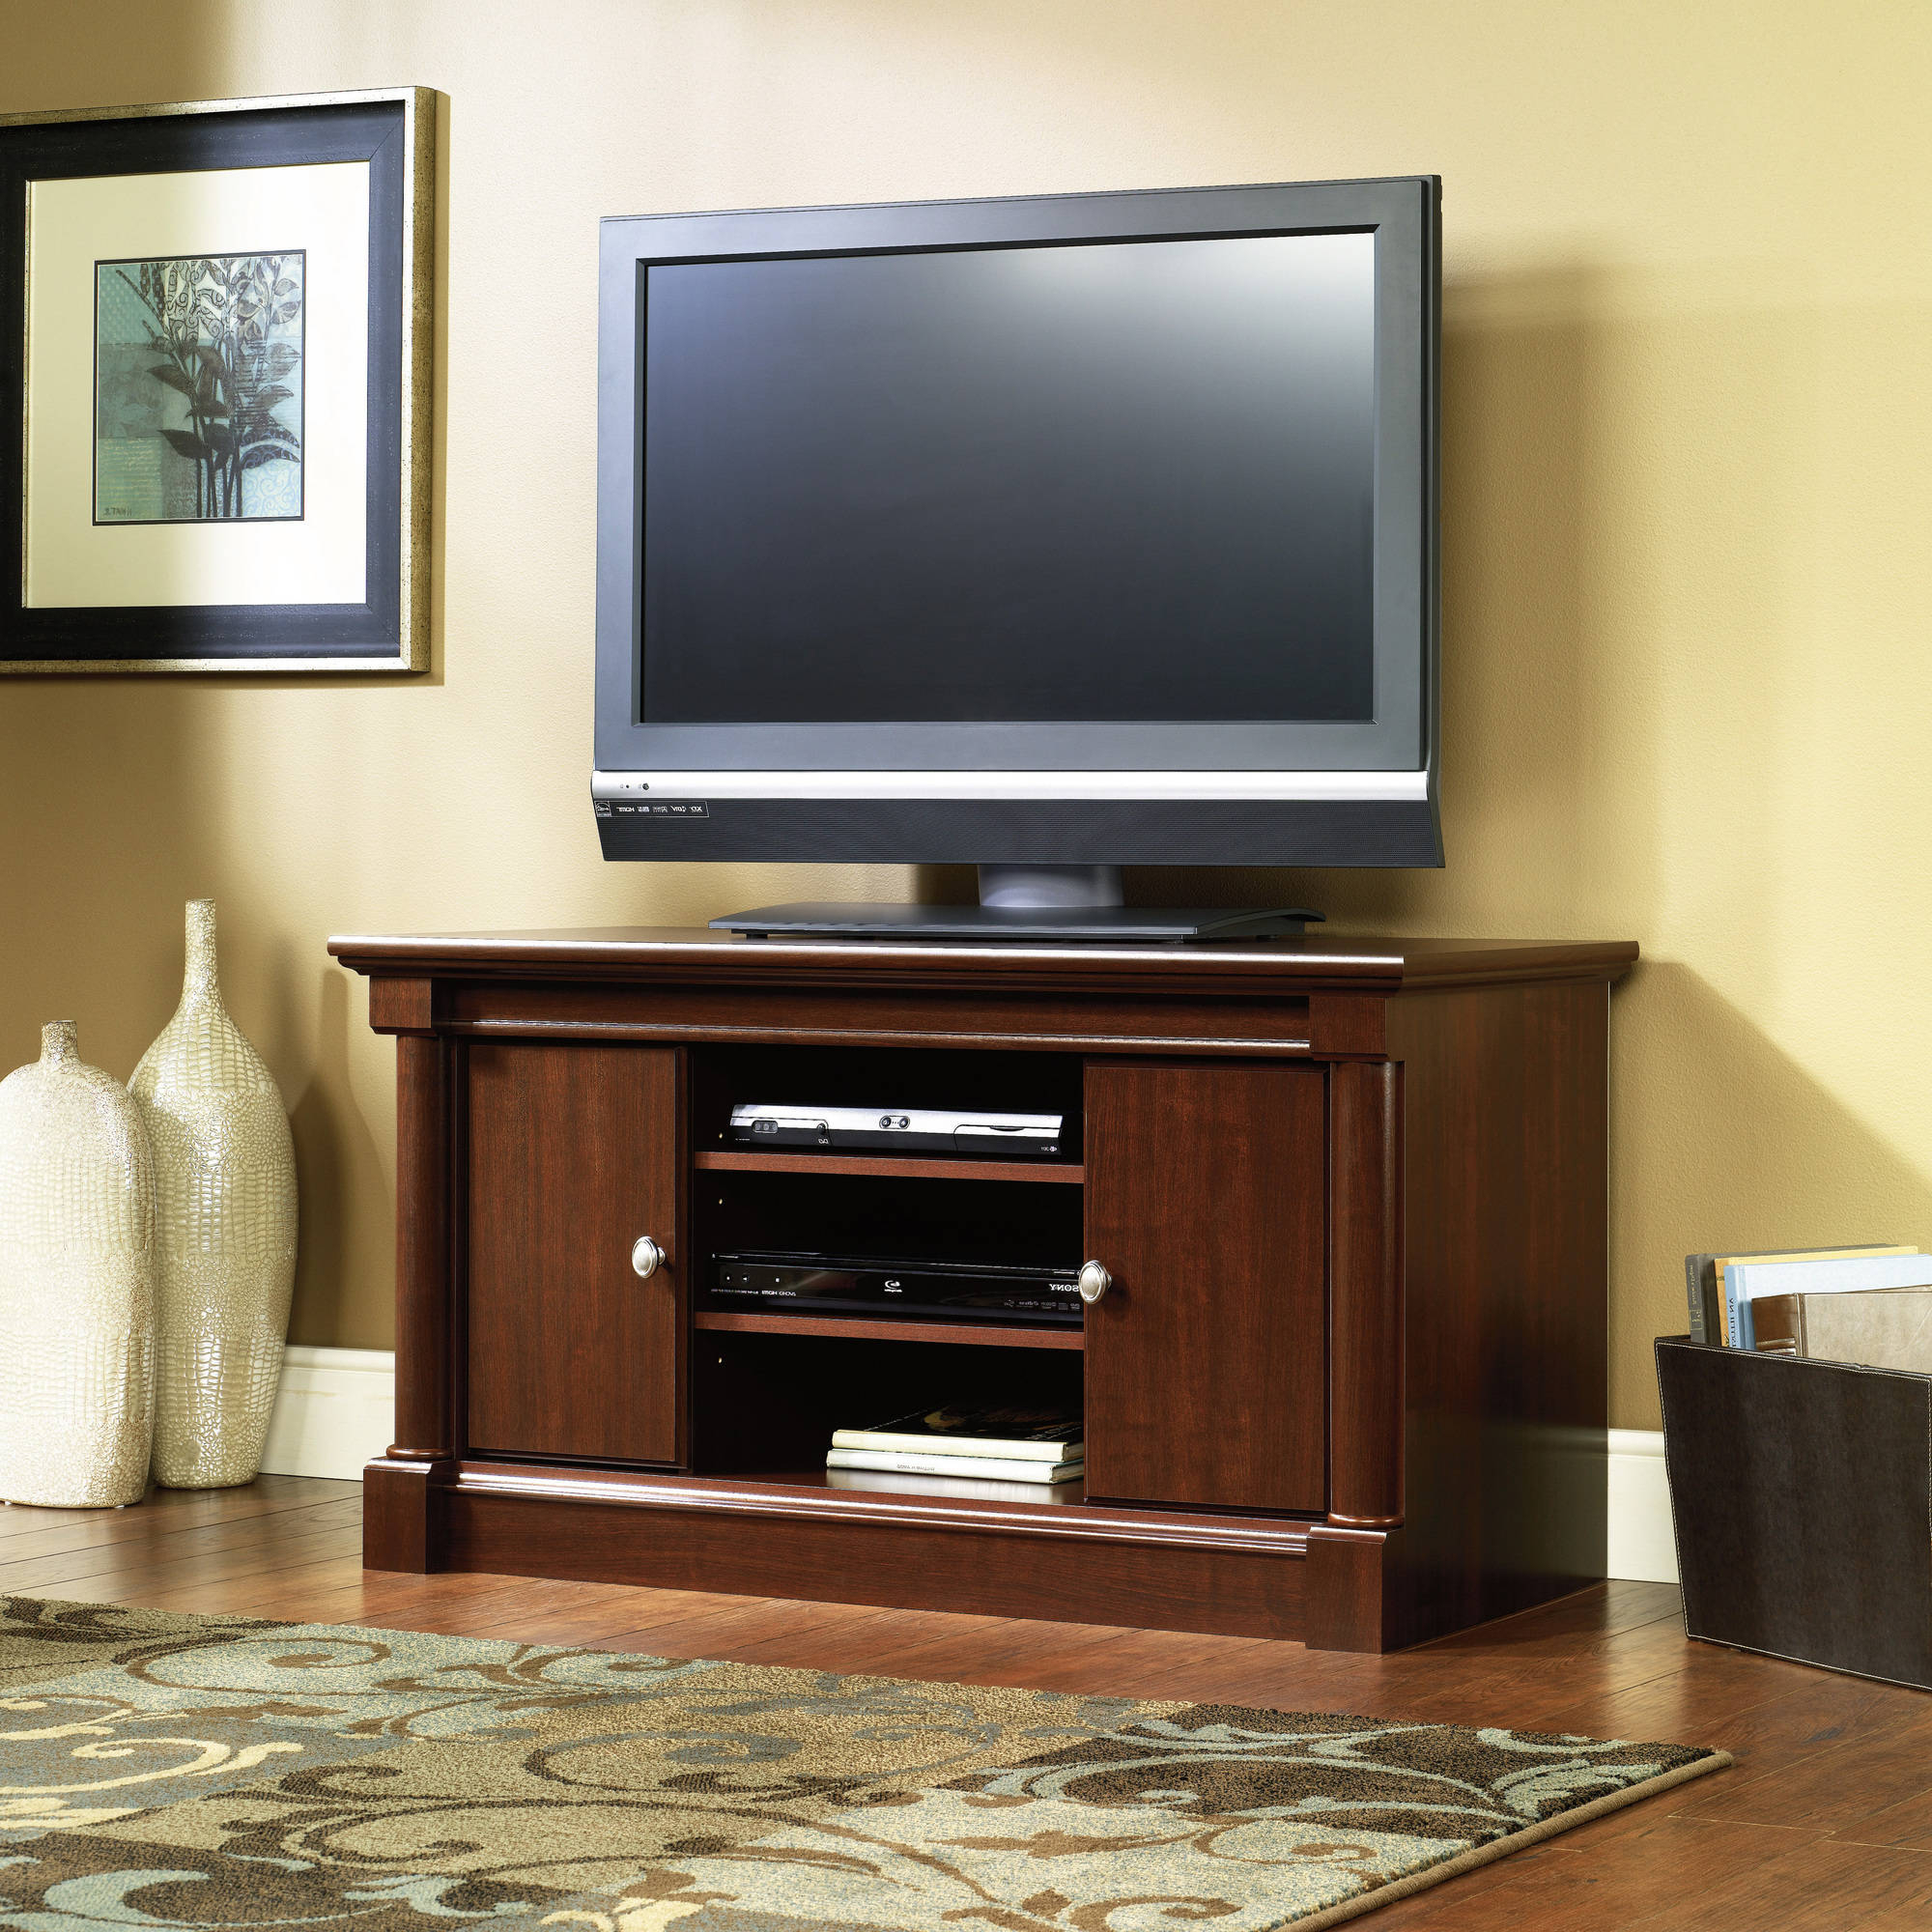 "Cherry Wood Tv Cabinets Inside Most Recently Released Sauder Palladia Panel Tv Stand For Tv's Up To 50"", Select Cherry (View 5 of 20)"